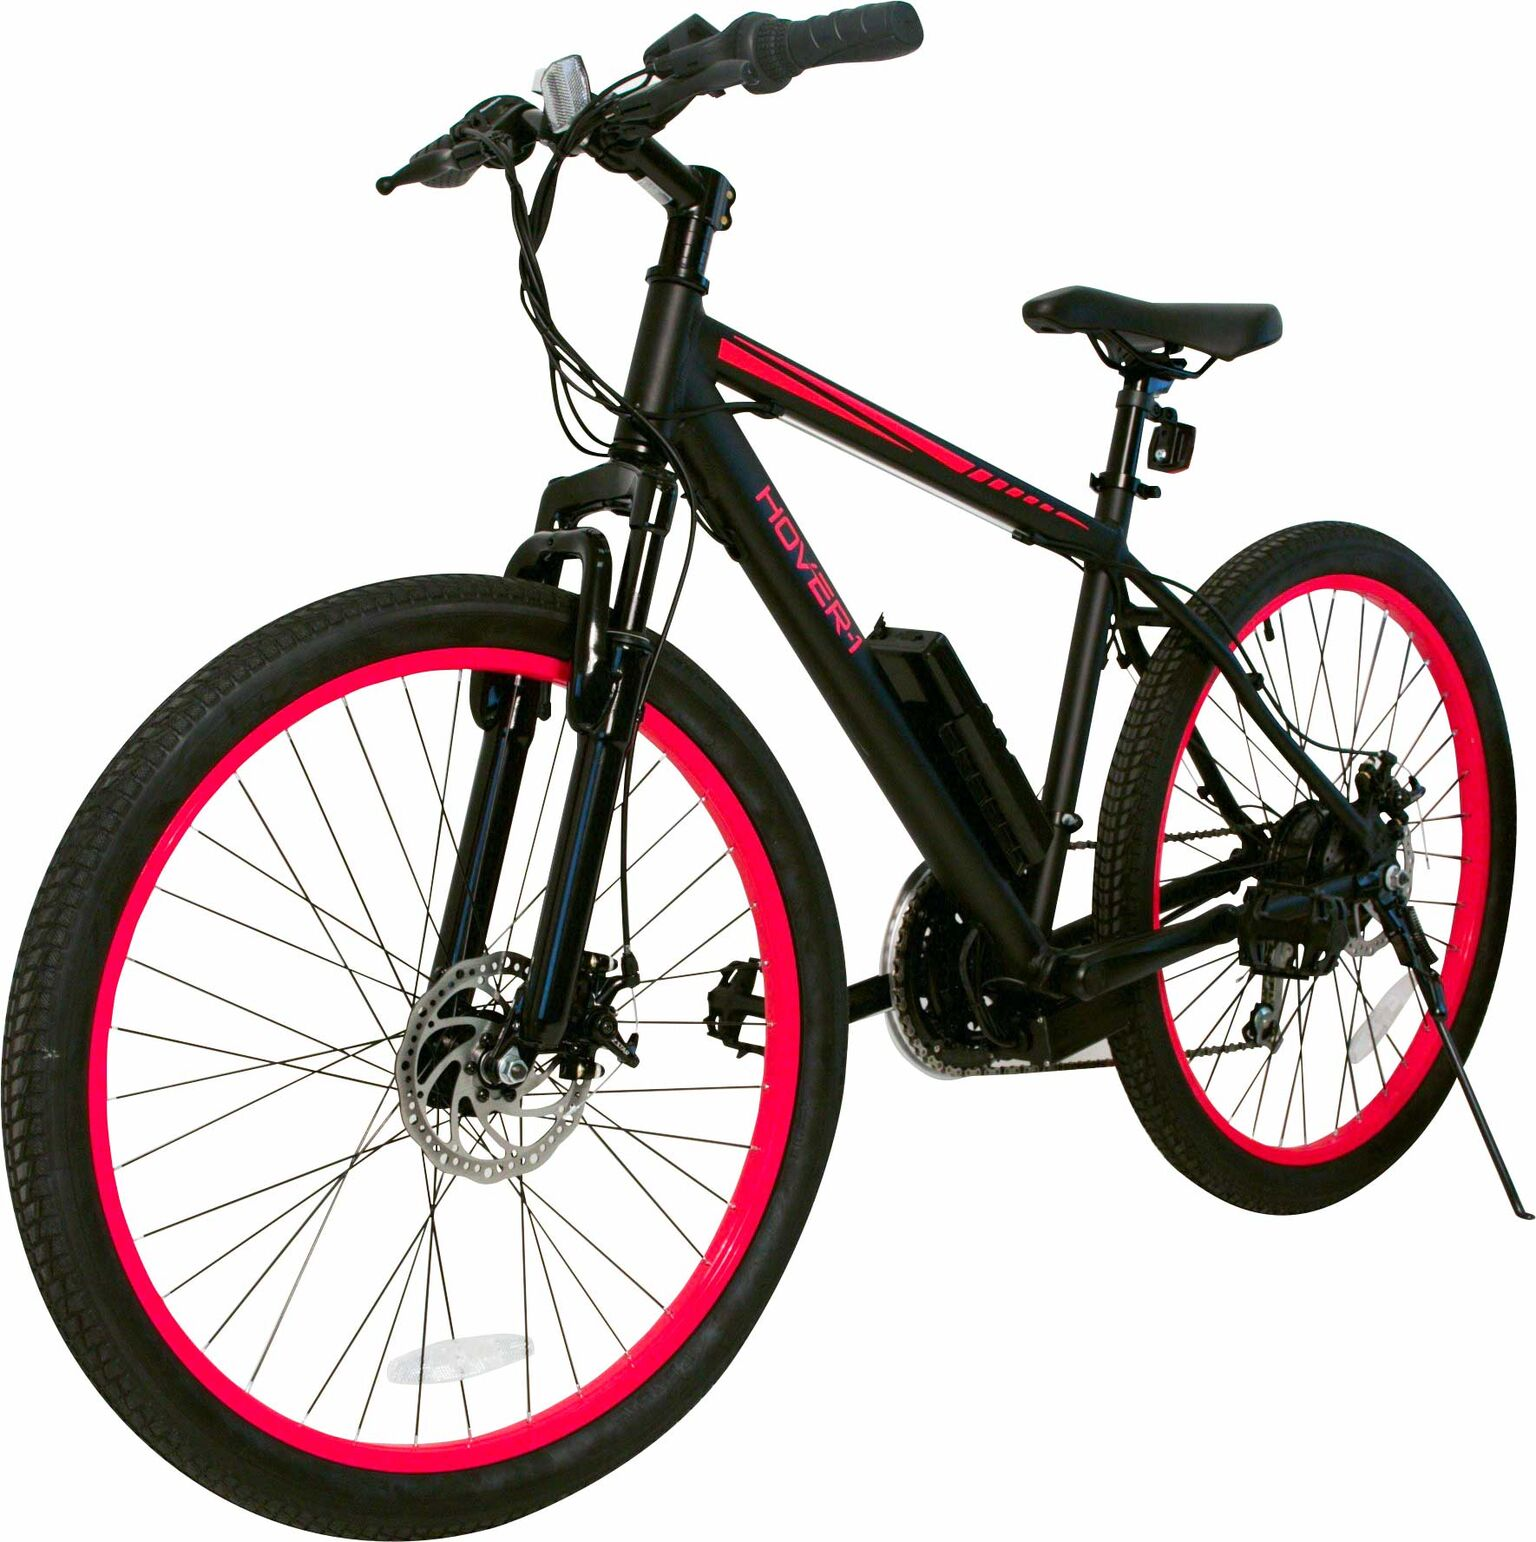 "Hover-1 Fuel UL Certified Pedal Assisted Electric Bike w/ 26"" Wheel, Alloy Frame, 3 Speed Mode, Removeable Battery, Shimano Derailer, Front & Rear Disc Breaks - Red and Black"